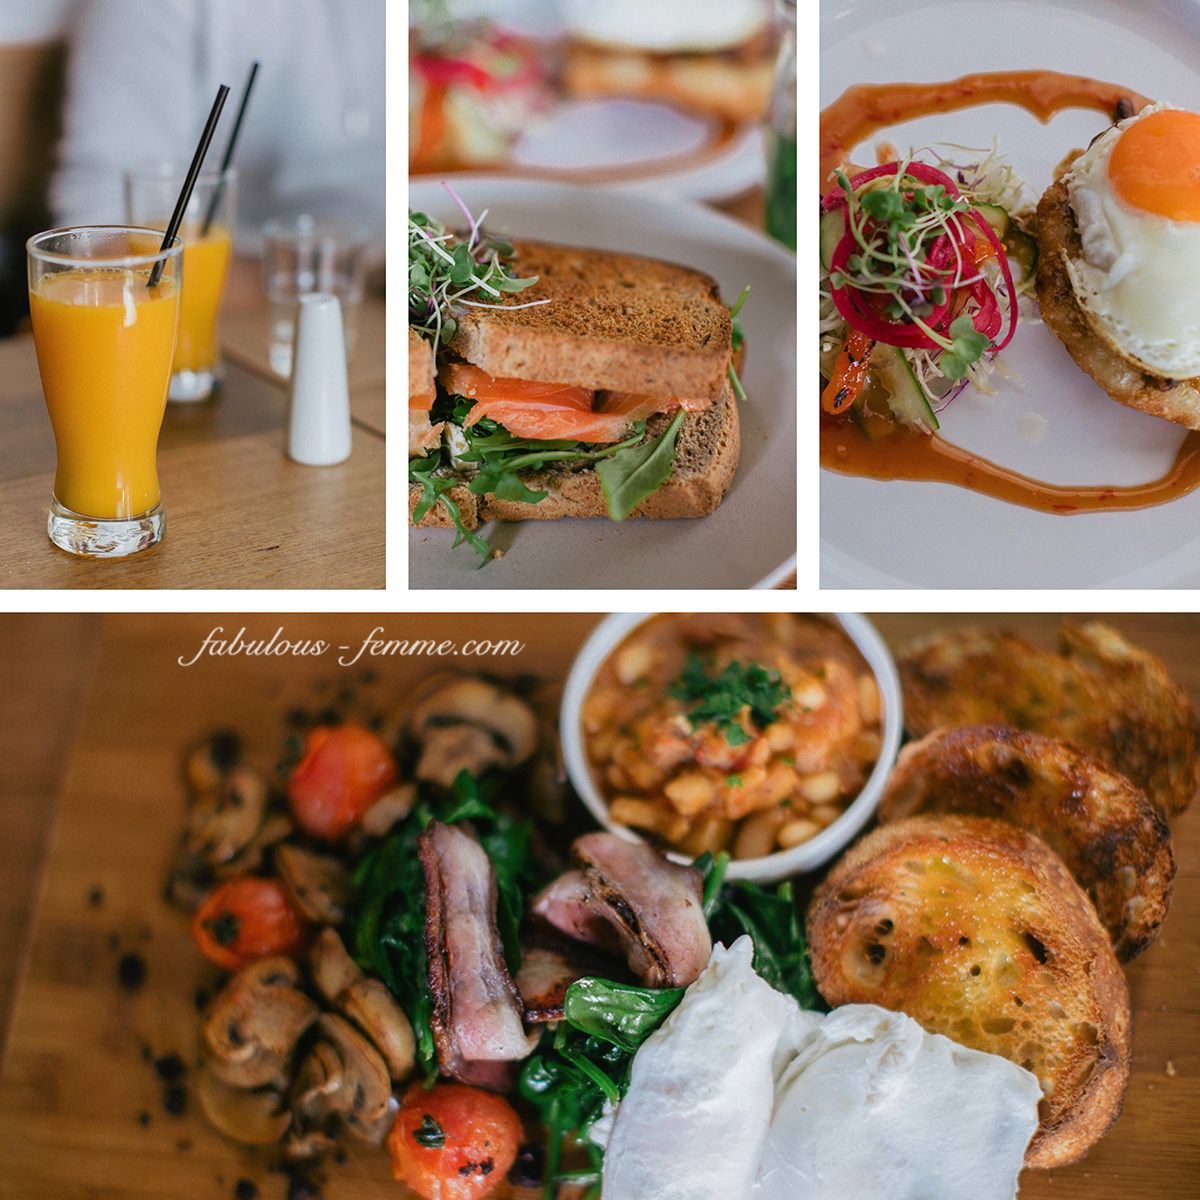 brunch menu - creative and yummy - one of the best in Melbourne